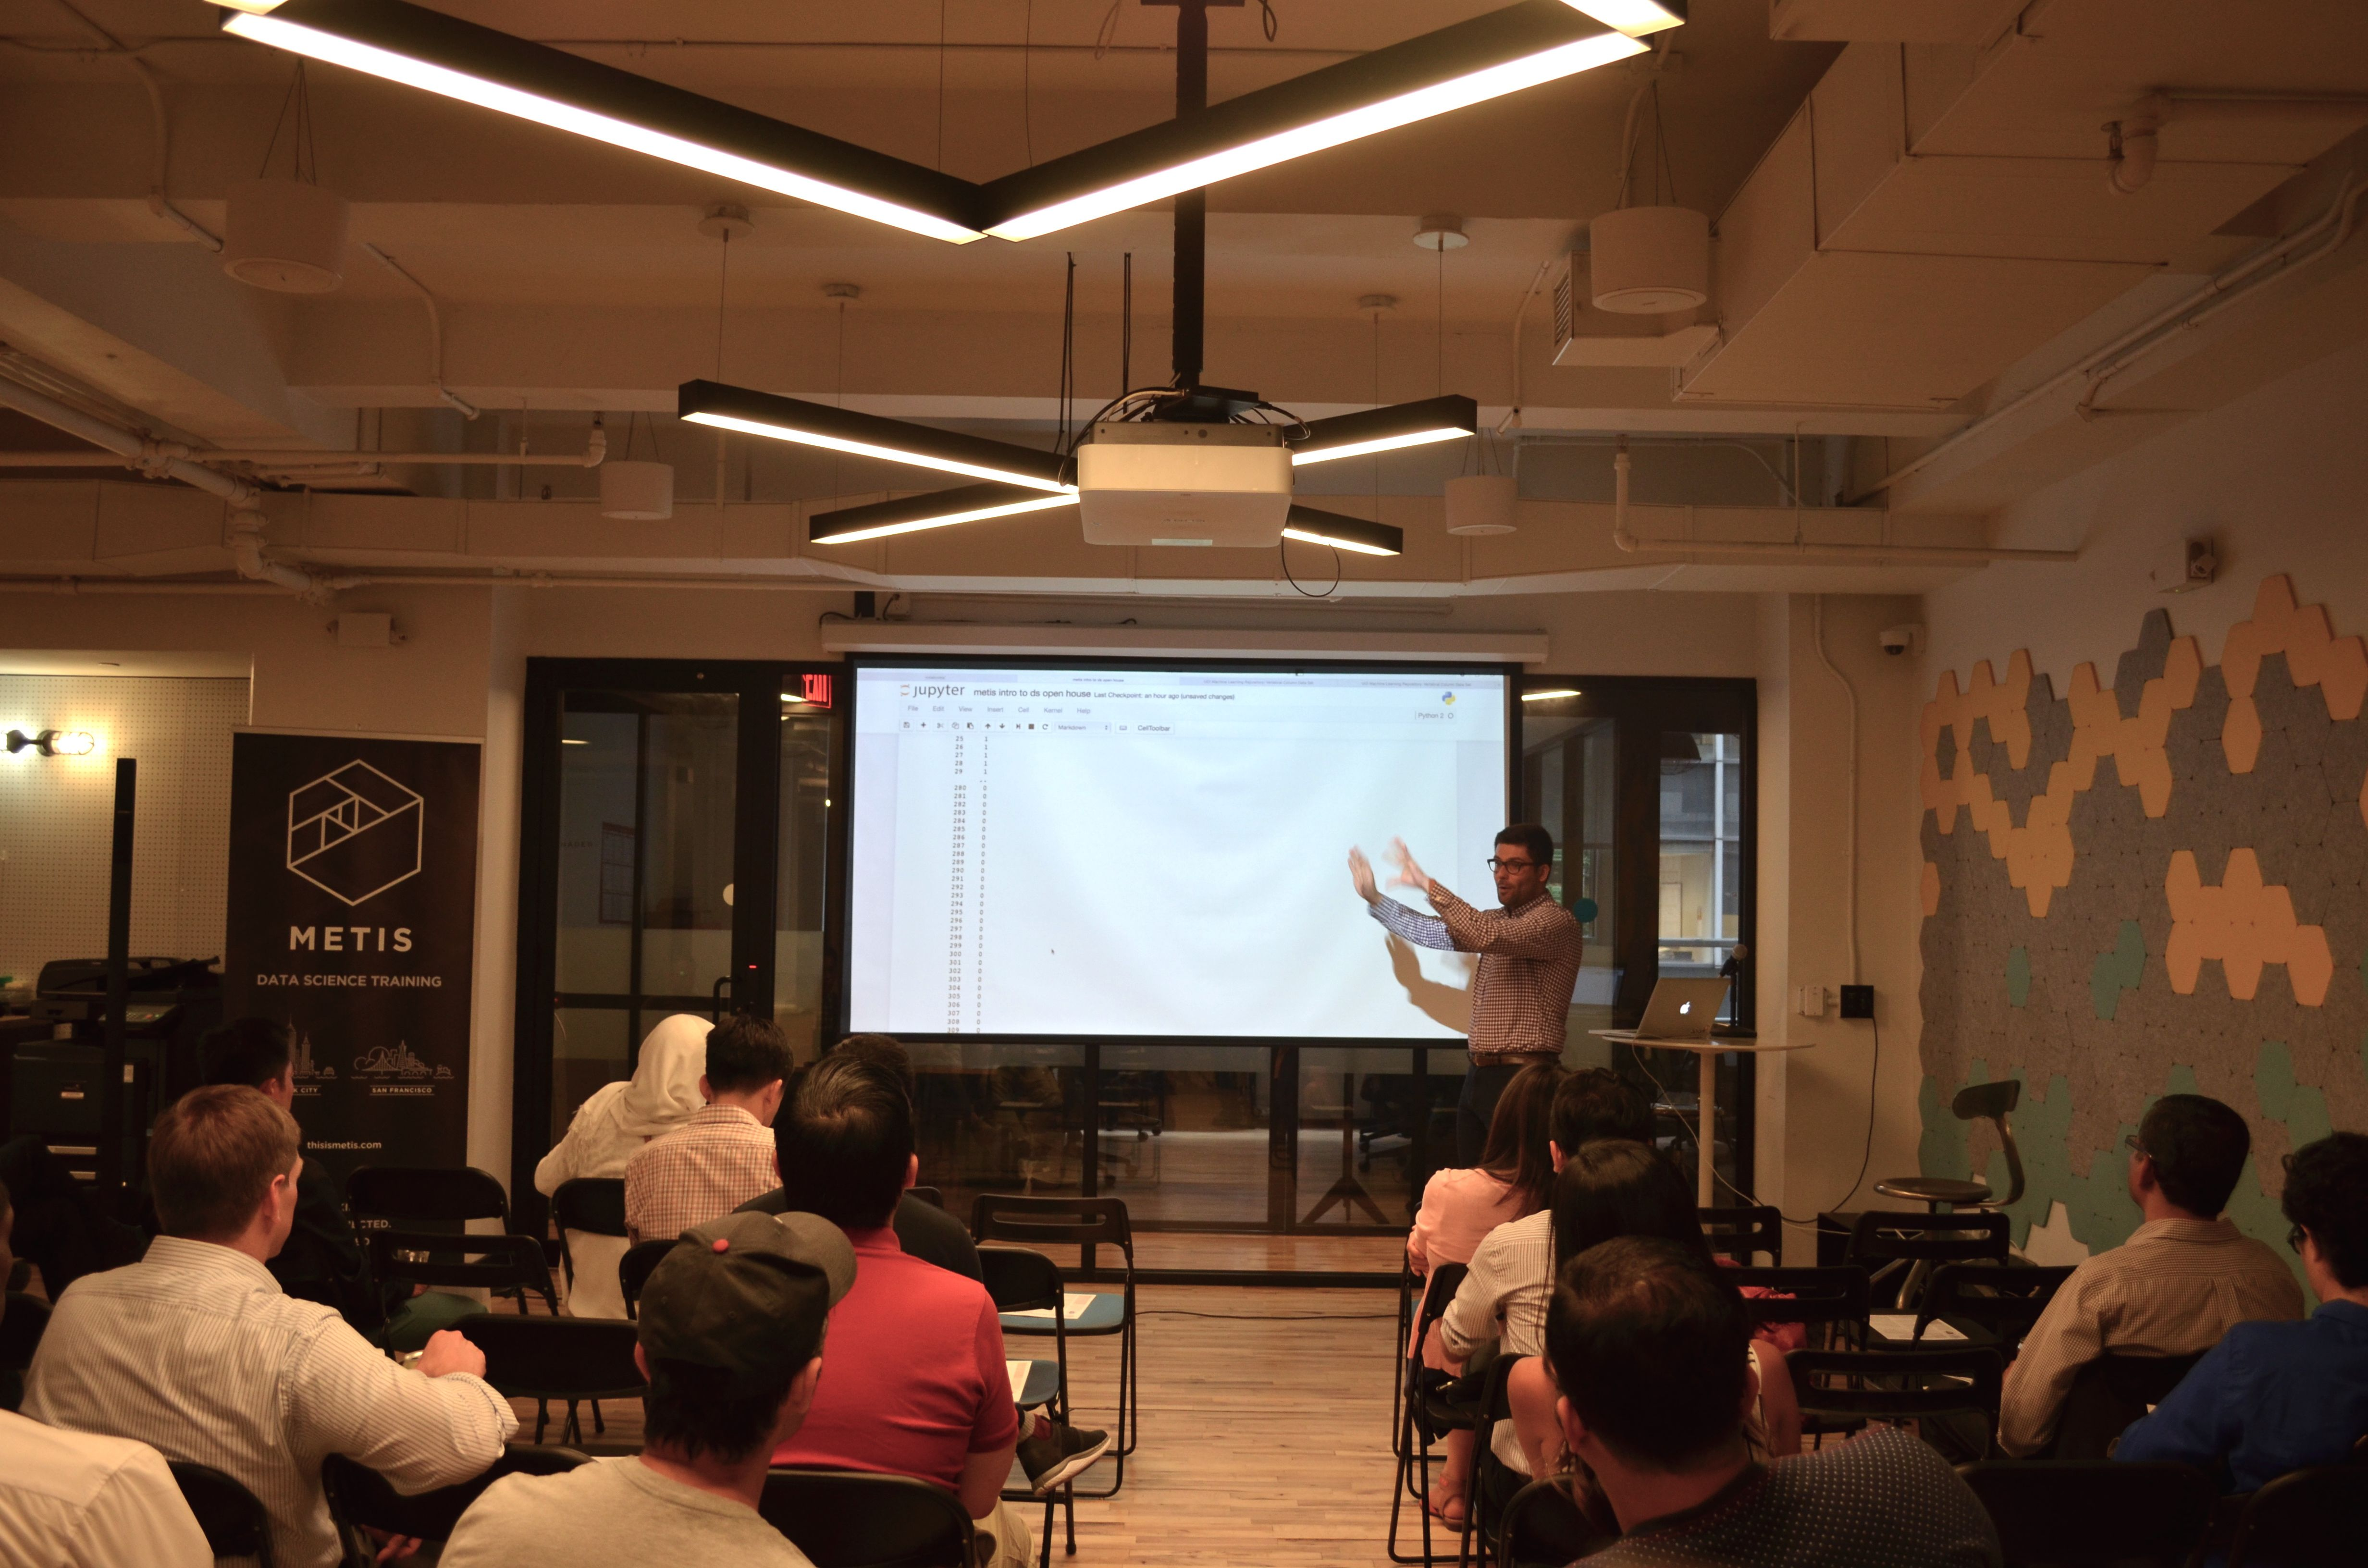 Metis: New York Data Science